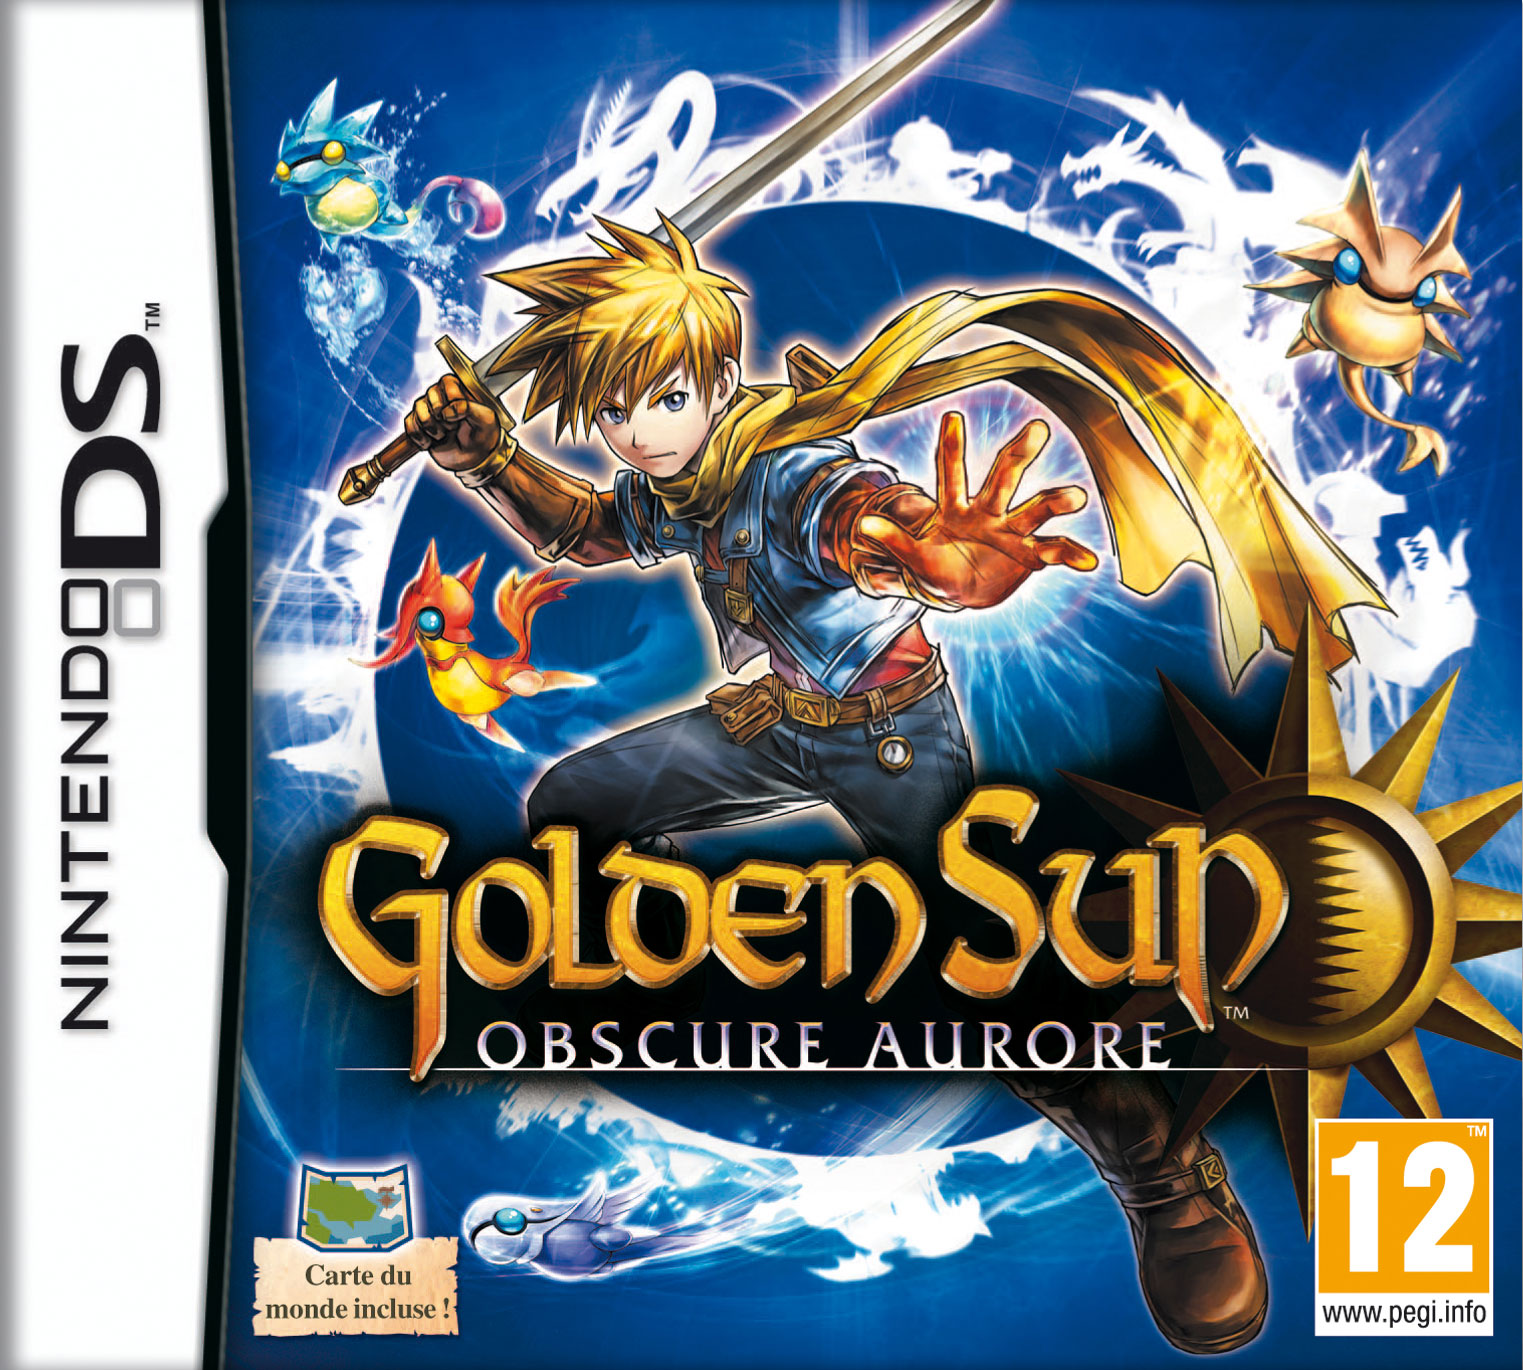 large].: Golden Sun : Obscure Aurore :.[/large]